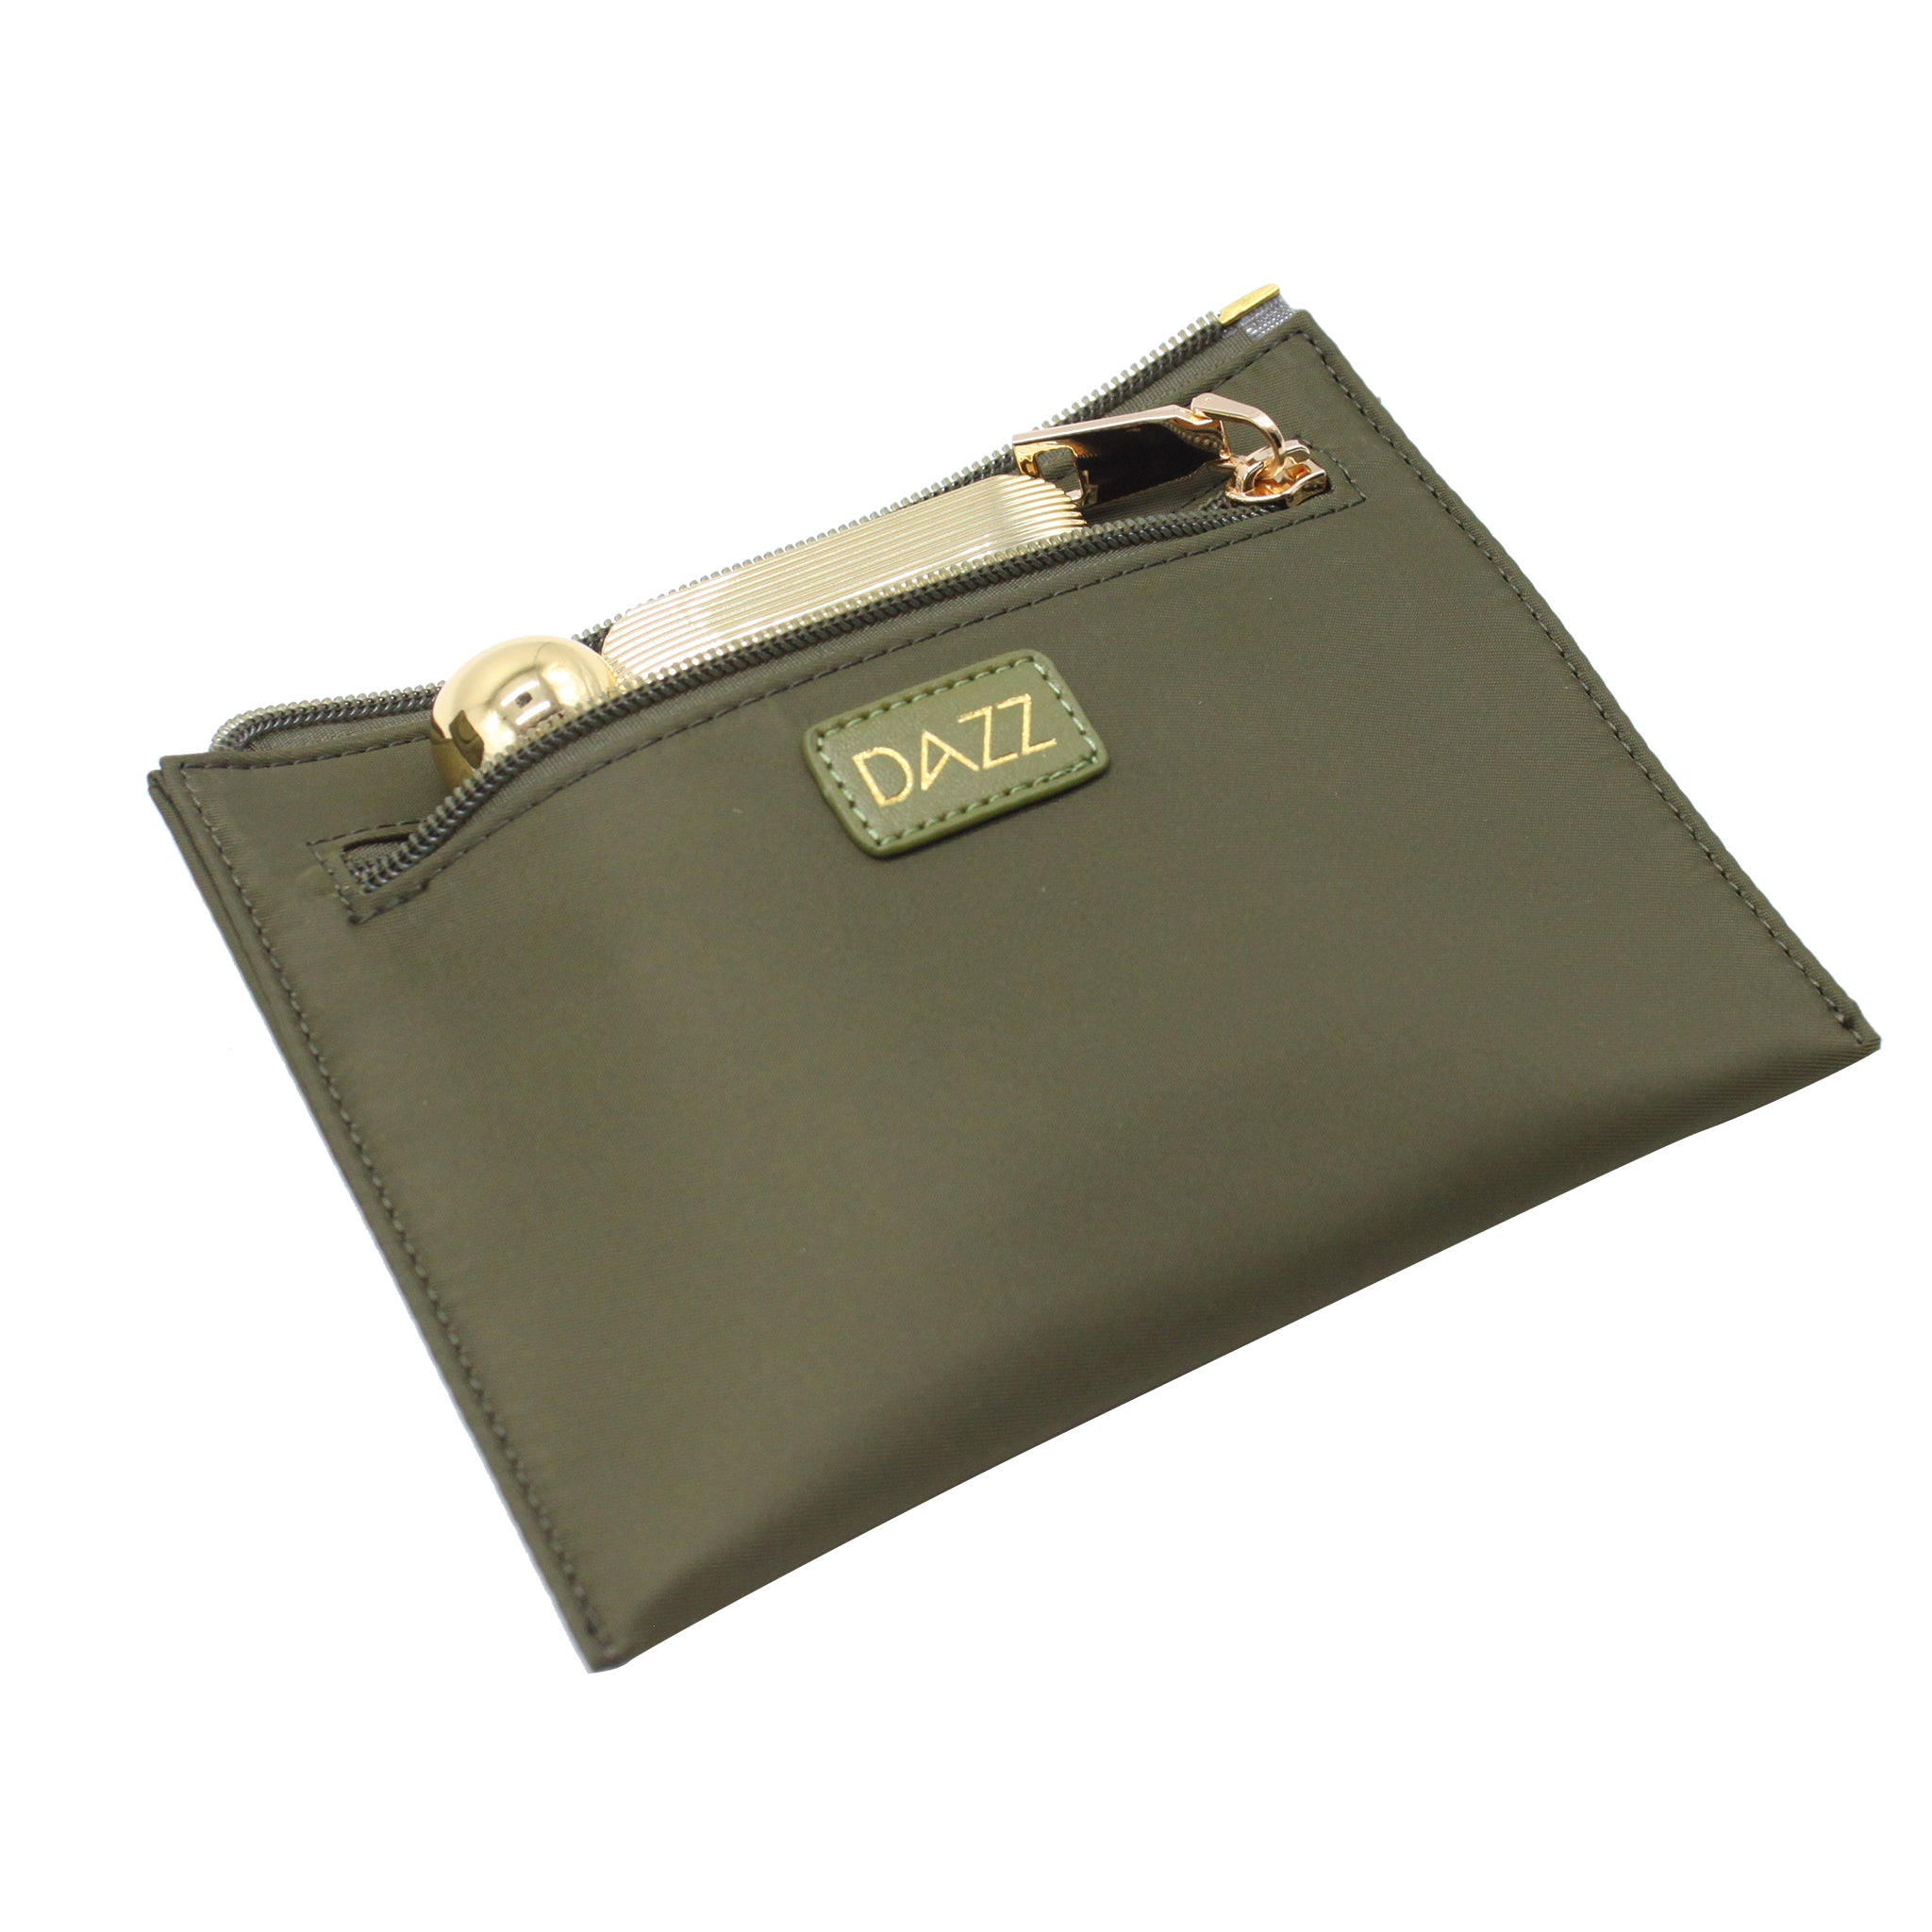 On the Go Mini 3-in-1 Handbag - Olive Green